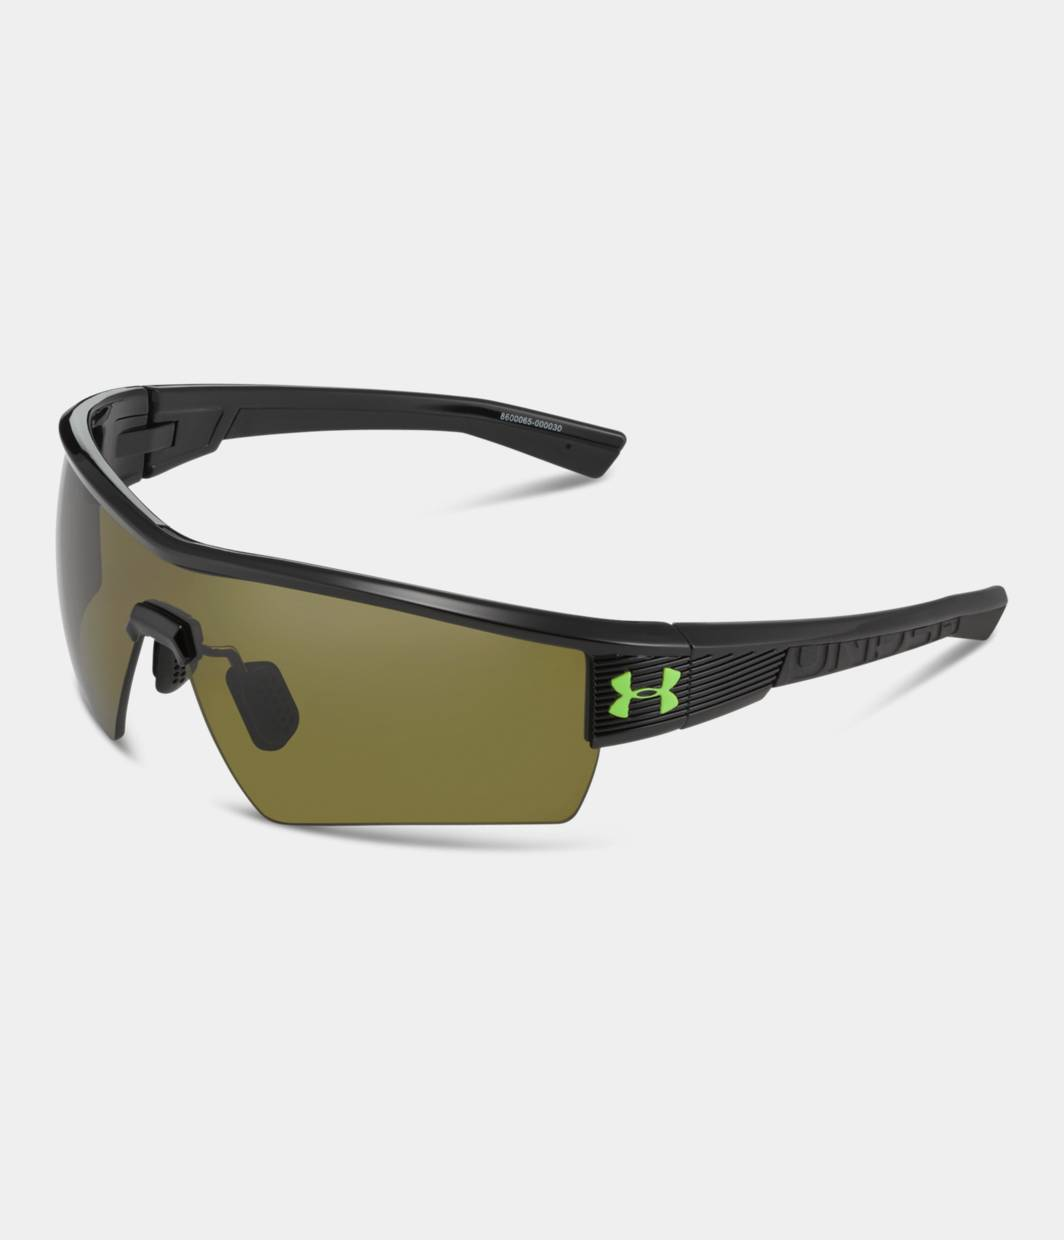 88b508 Knock Off Oakley Flak Jacket Sunglasses Oakley Discount Oakley Flak Jacket Sunglasses